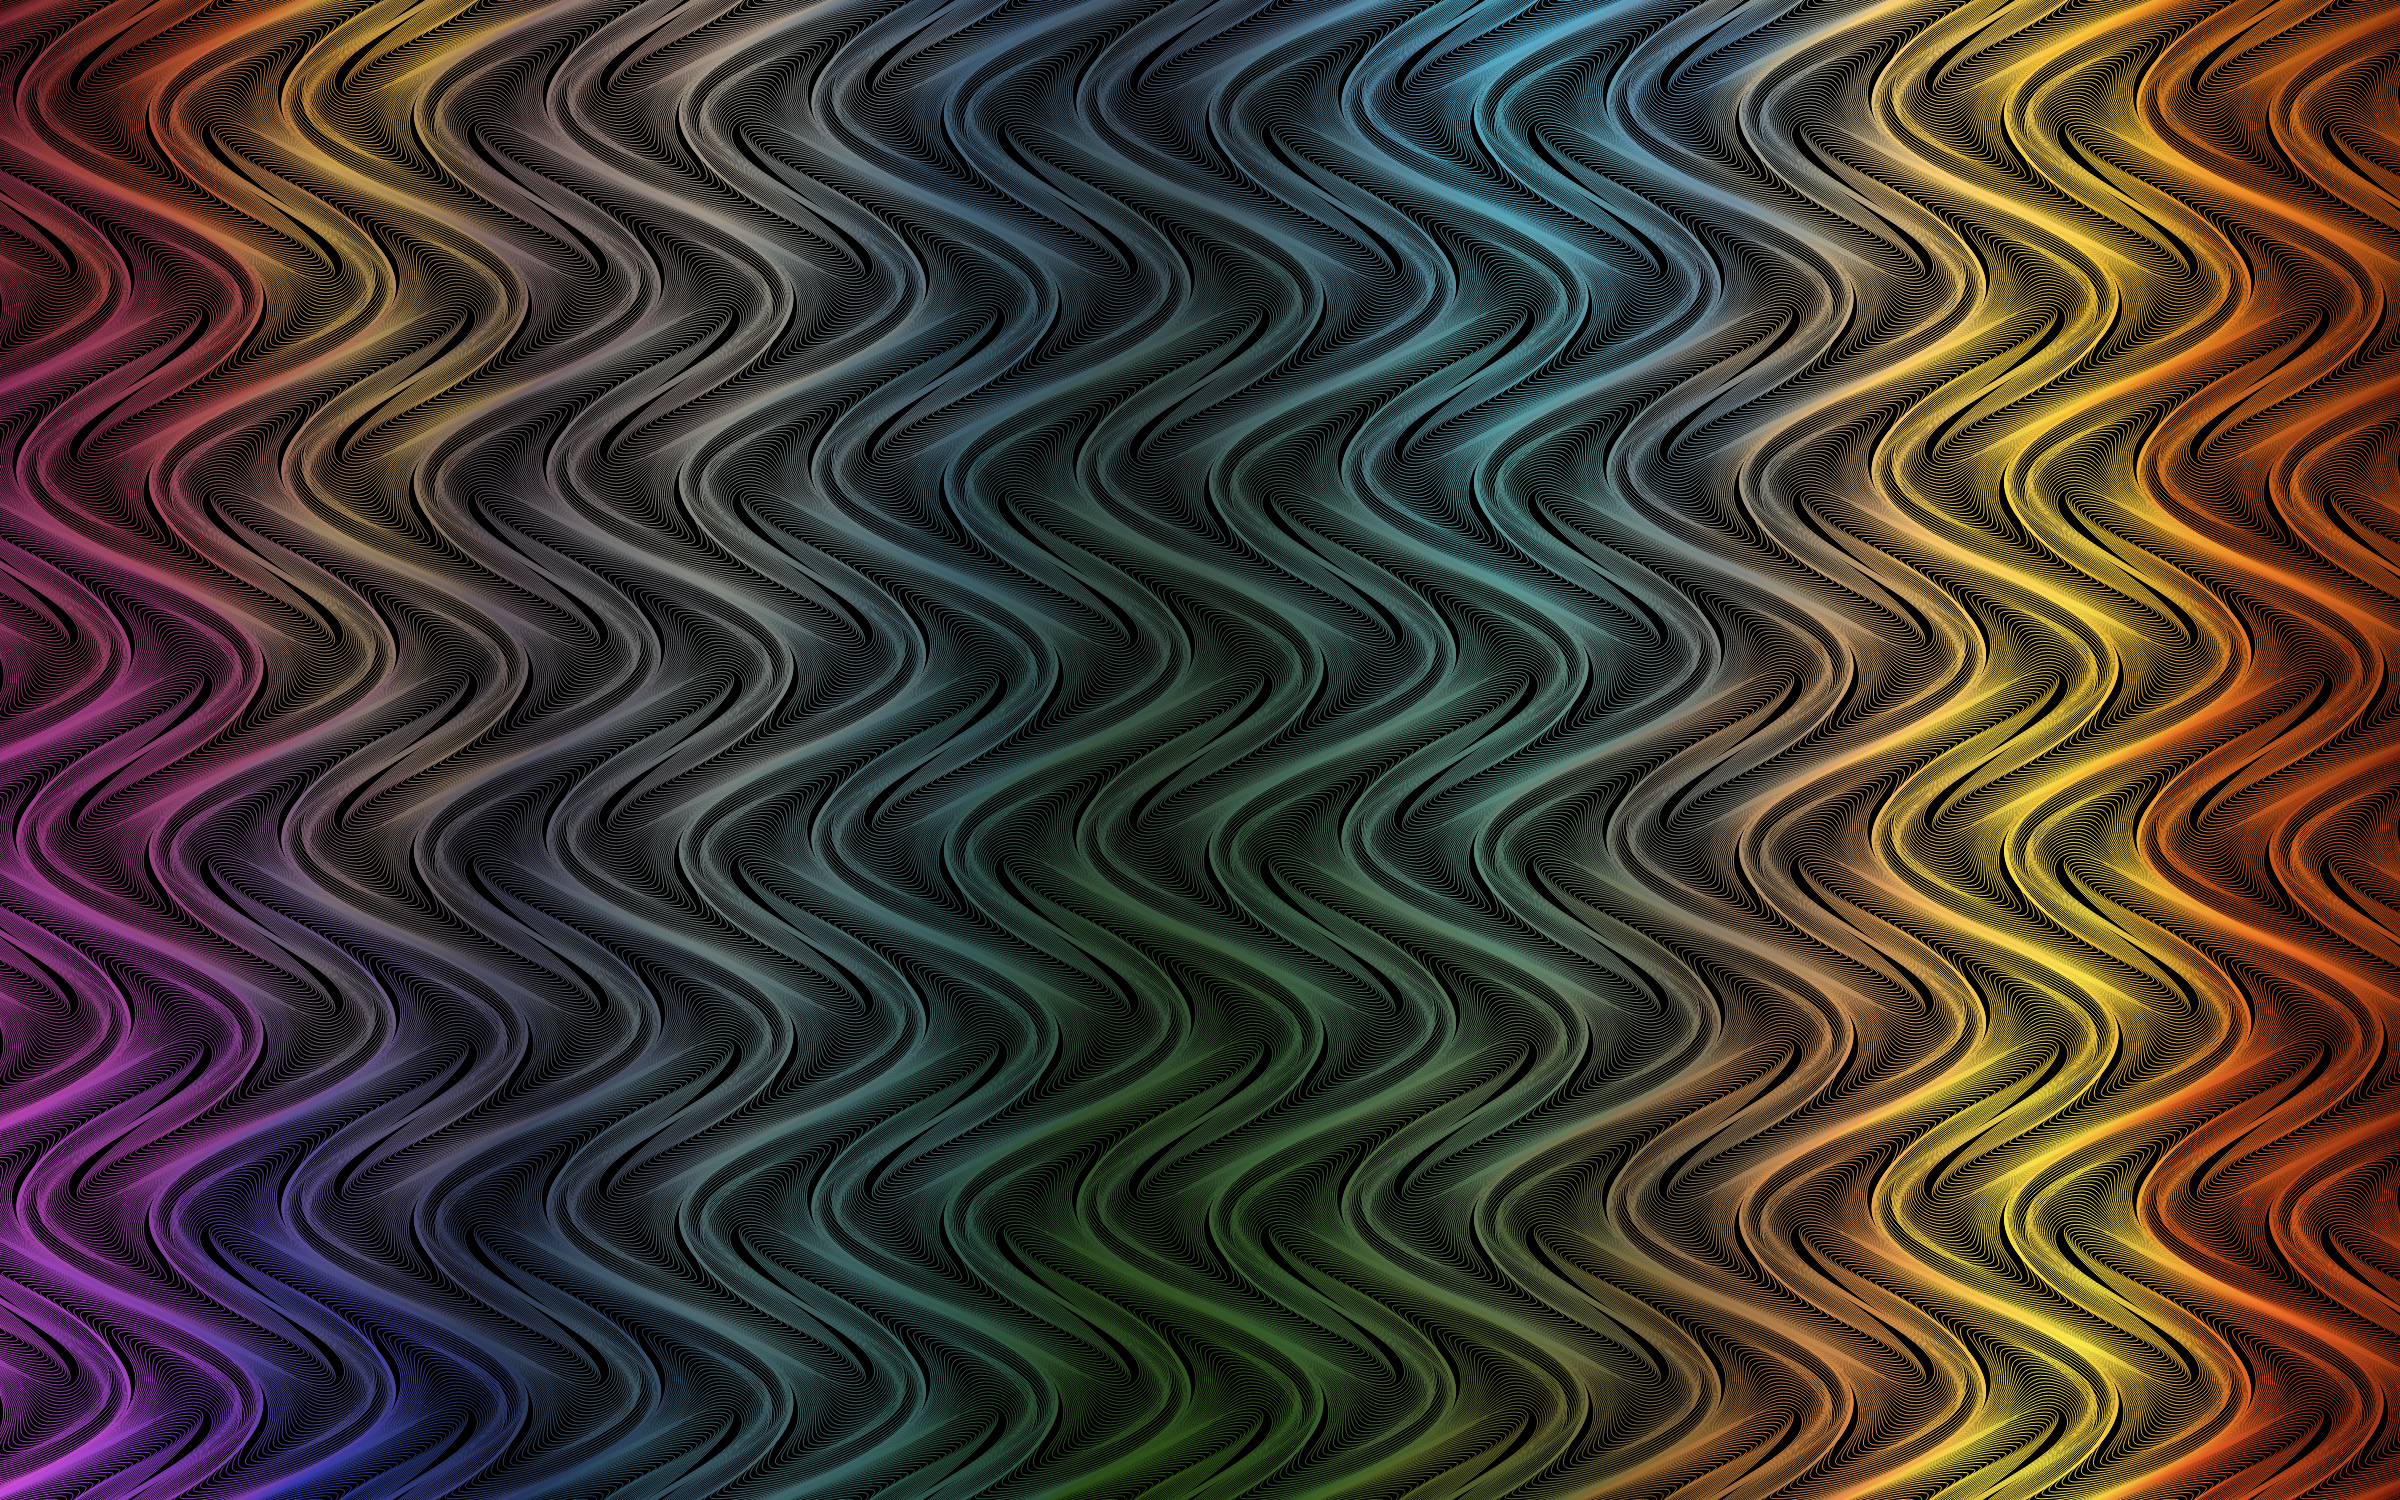 Abstract Prismatic Background 2 by GDJ